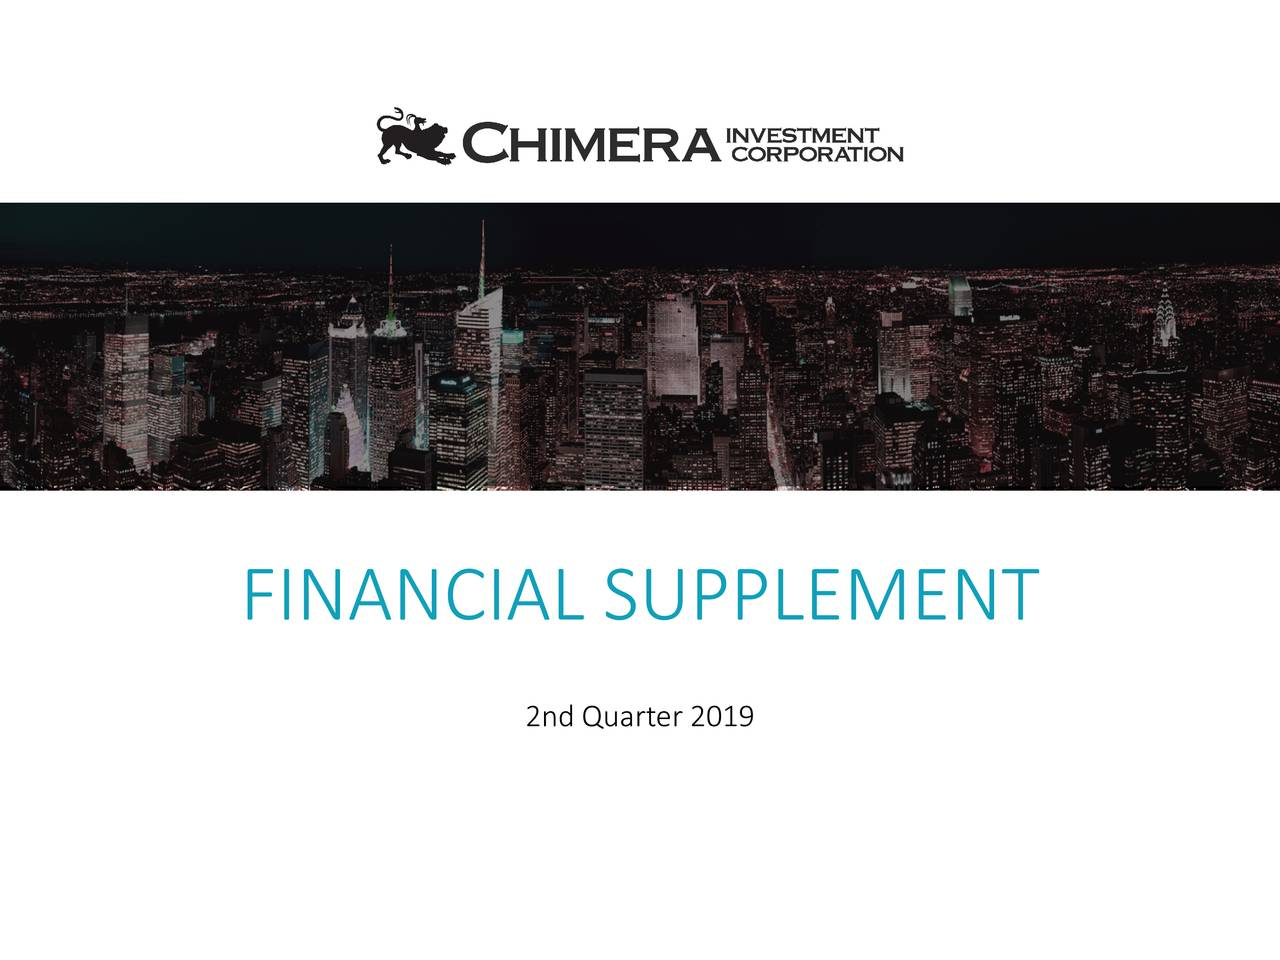 FINANCIAL SUPPLEMENT